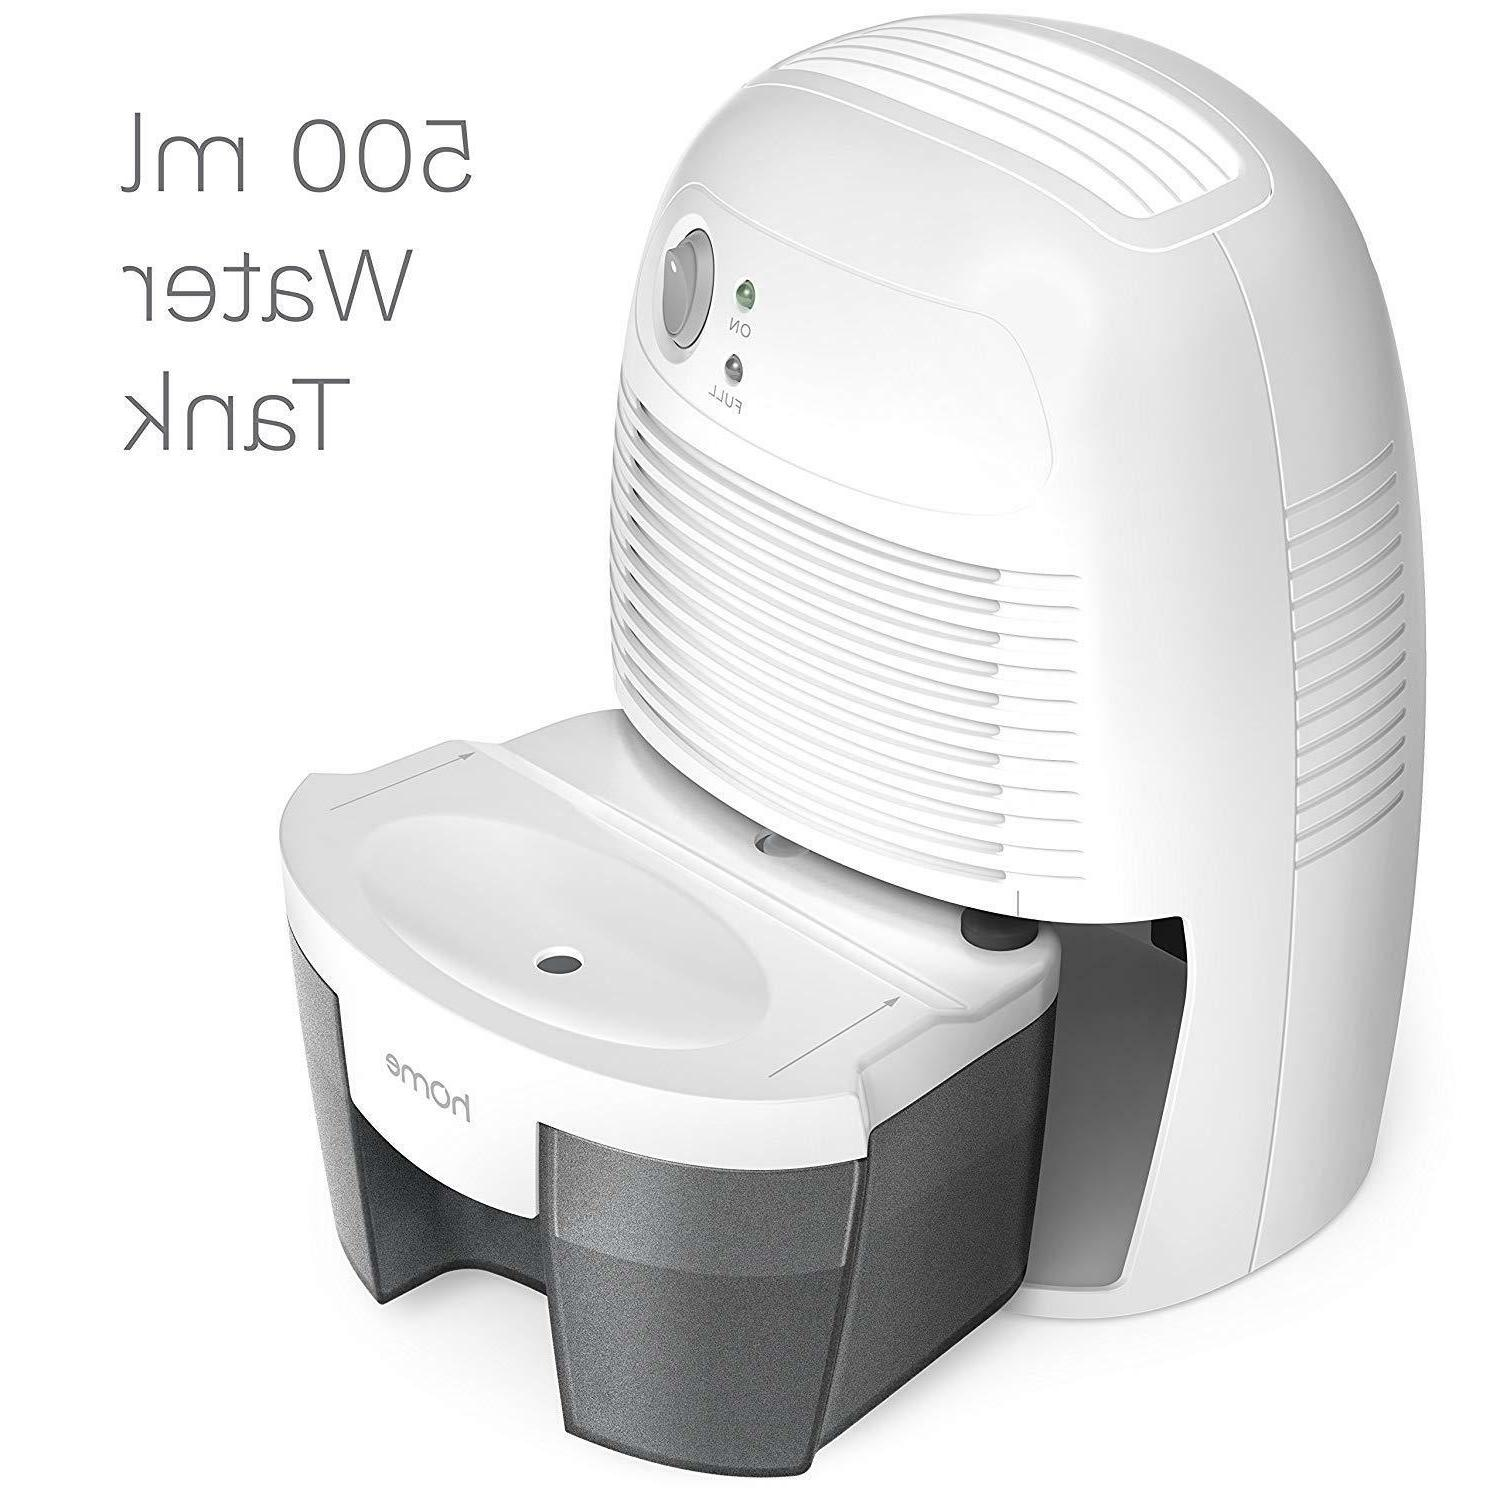 hOmeLabs Space Dehumidifier with Shut-Off Quietly Extracts